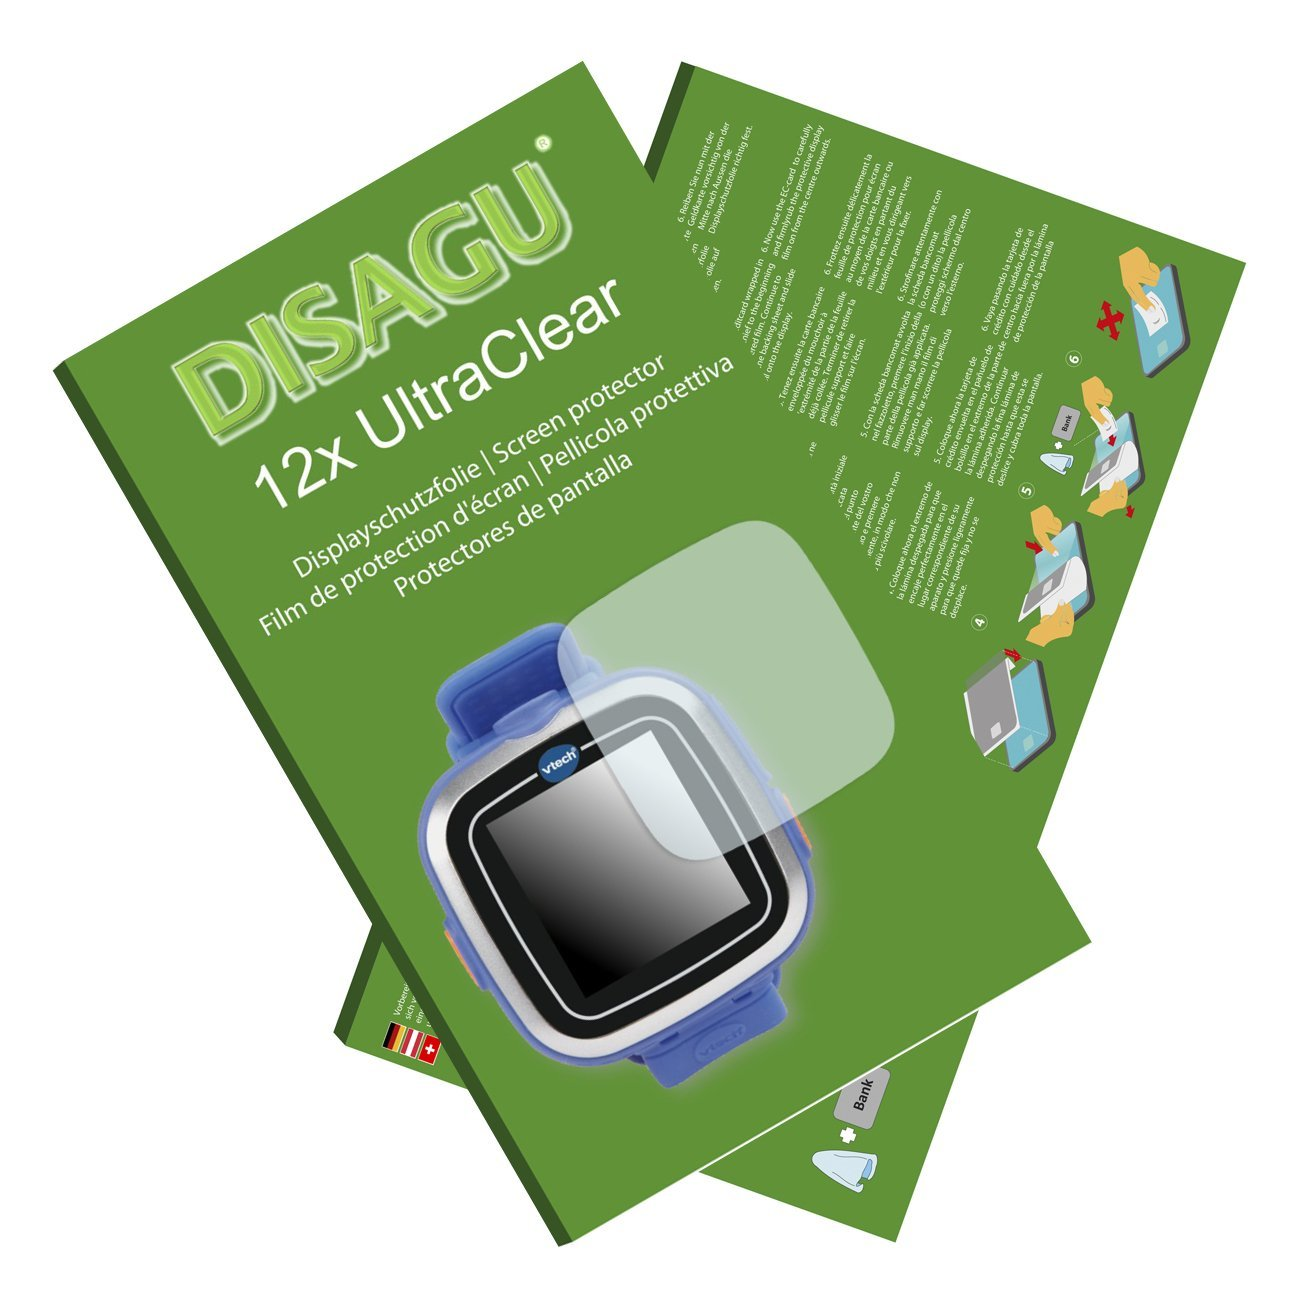 DISAGU 12x Ultra Clear Screen Protector for Vtech Kidizoom Smart Watch 1